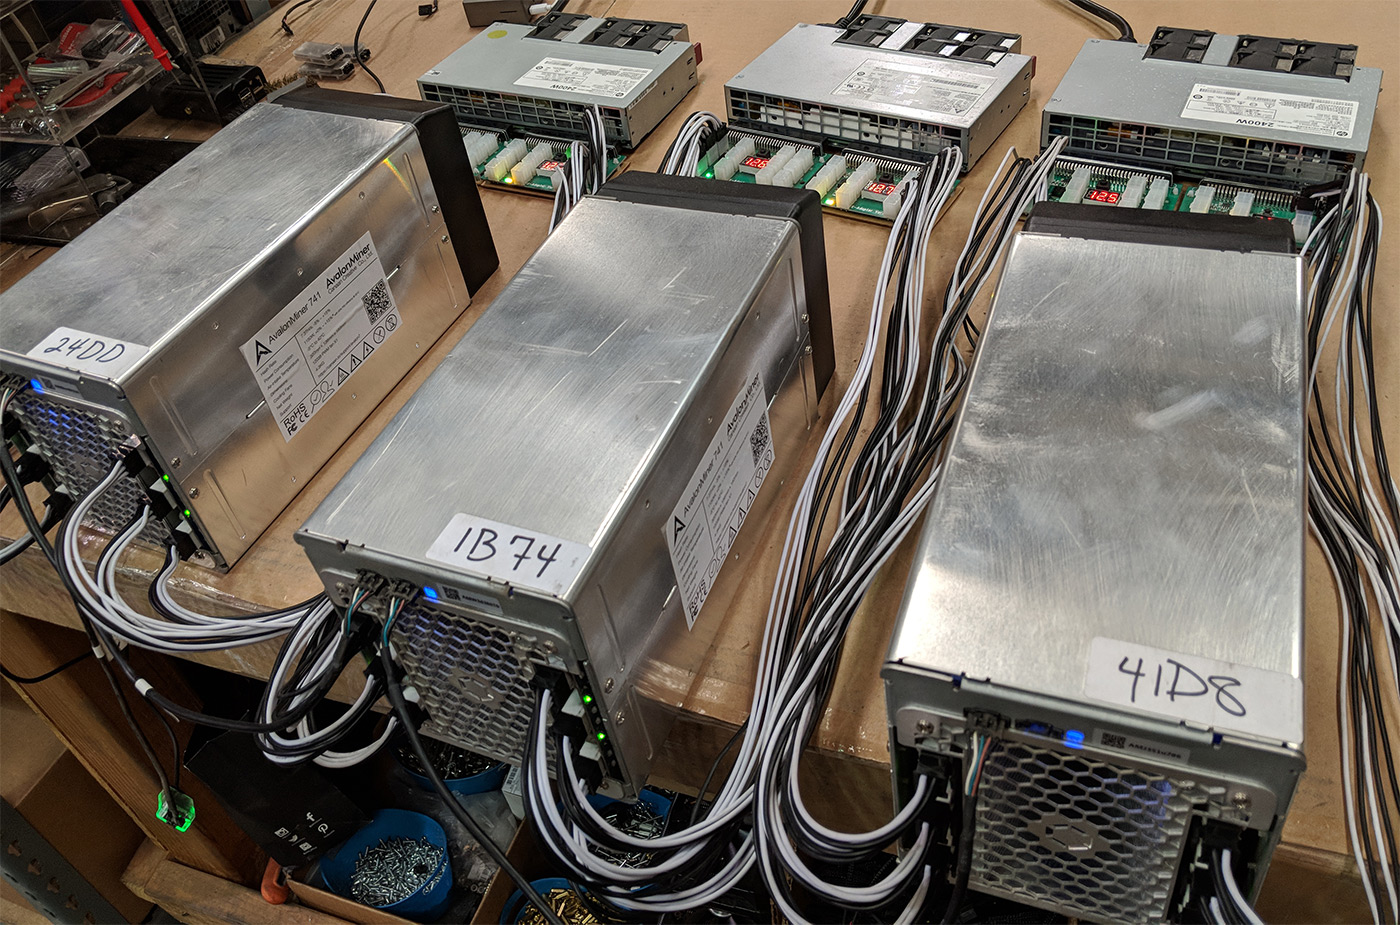 avalon 741 7 3th s 1150w sha256 asic miner btc bhc bitcoin avalon 741 7 3th s asic bitcoin miner 1150w 7300gh s btc bch